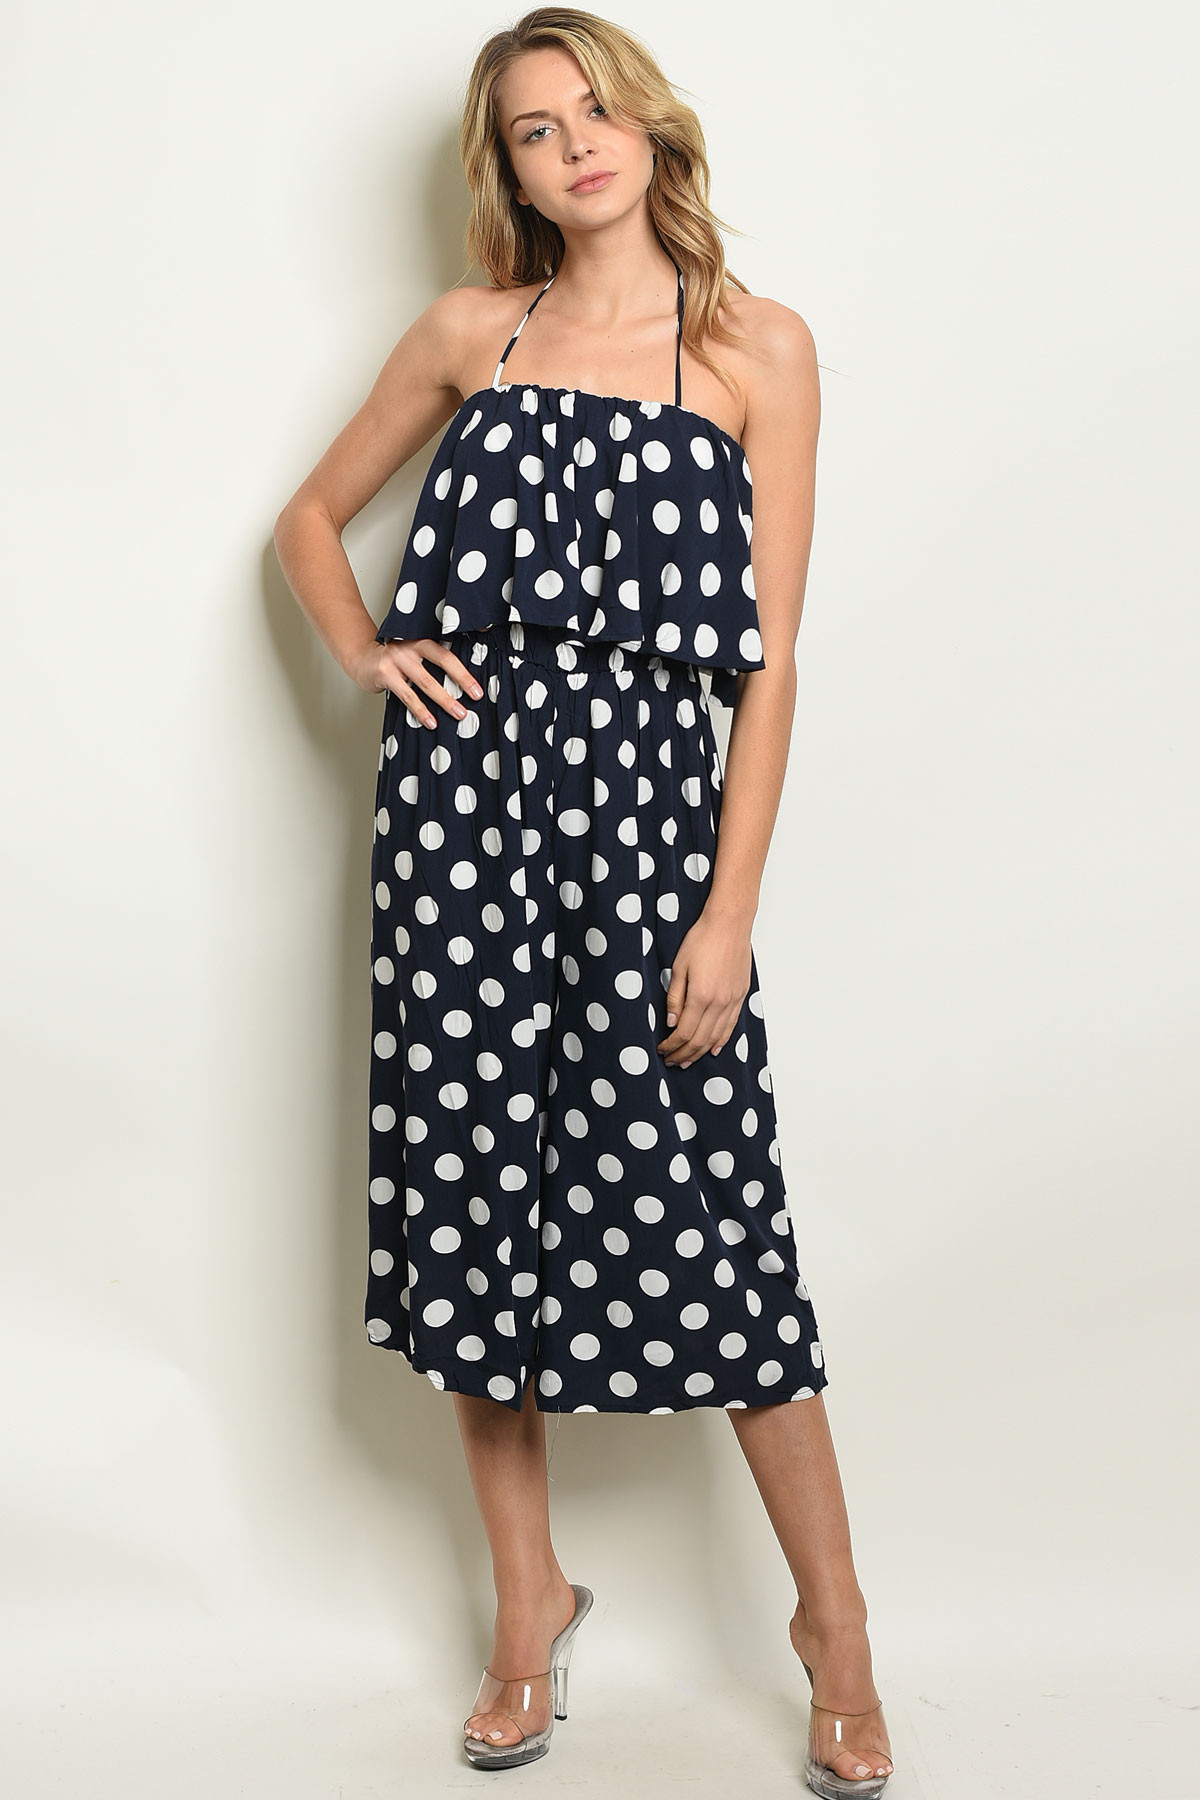 68bf7cff1b4 ... NAVY WHITE WITH POLKA DOTS JUMPSUIT 1-1 · Larger Photo ...